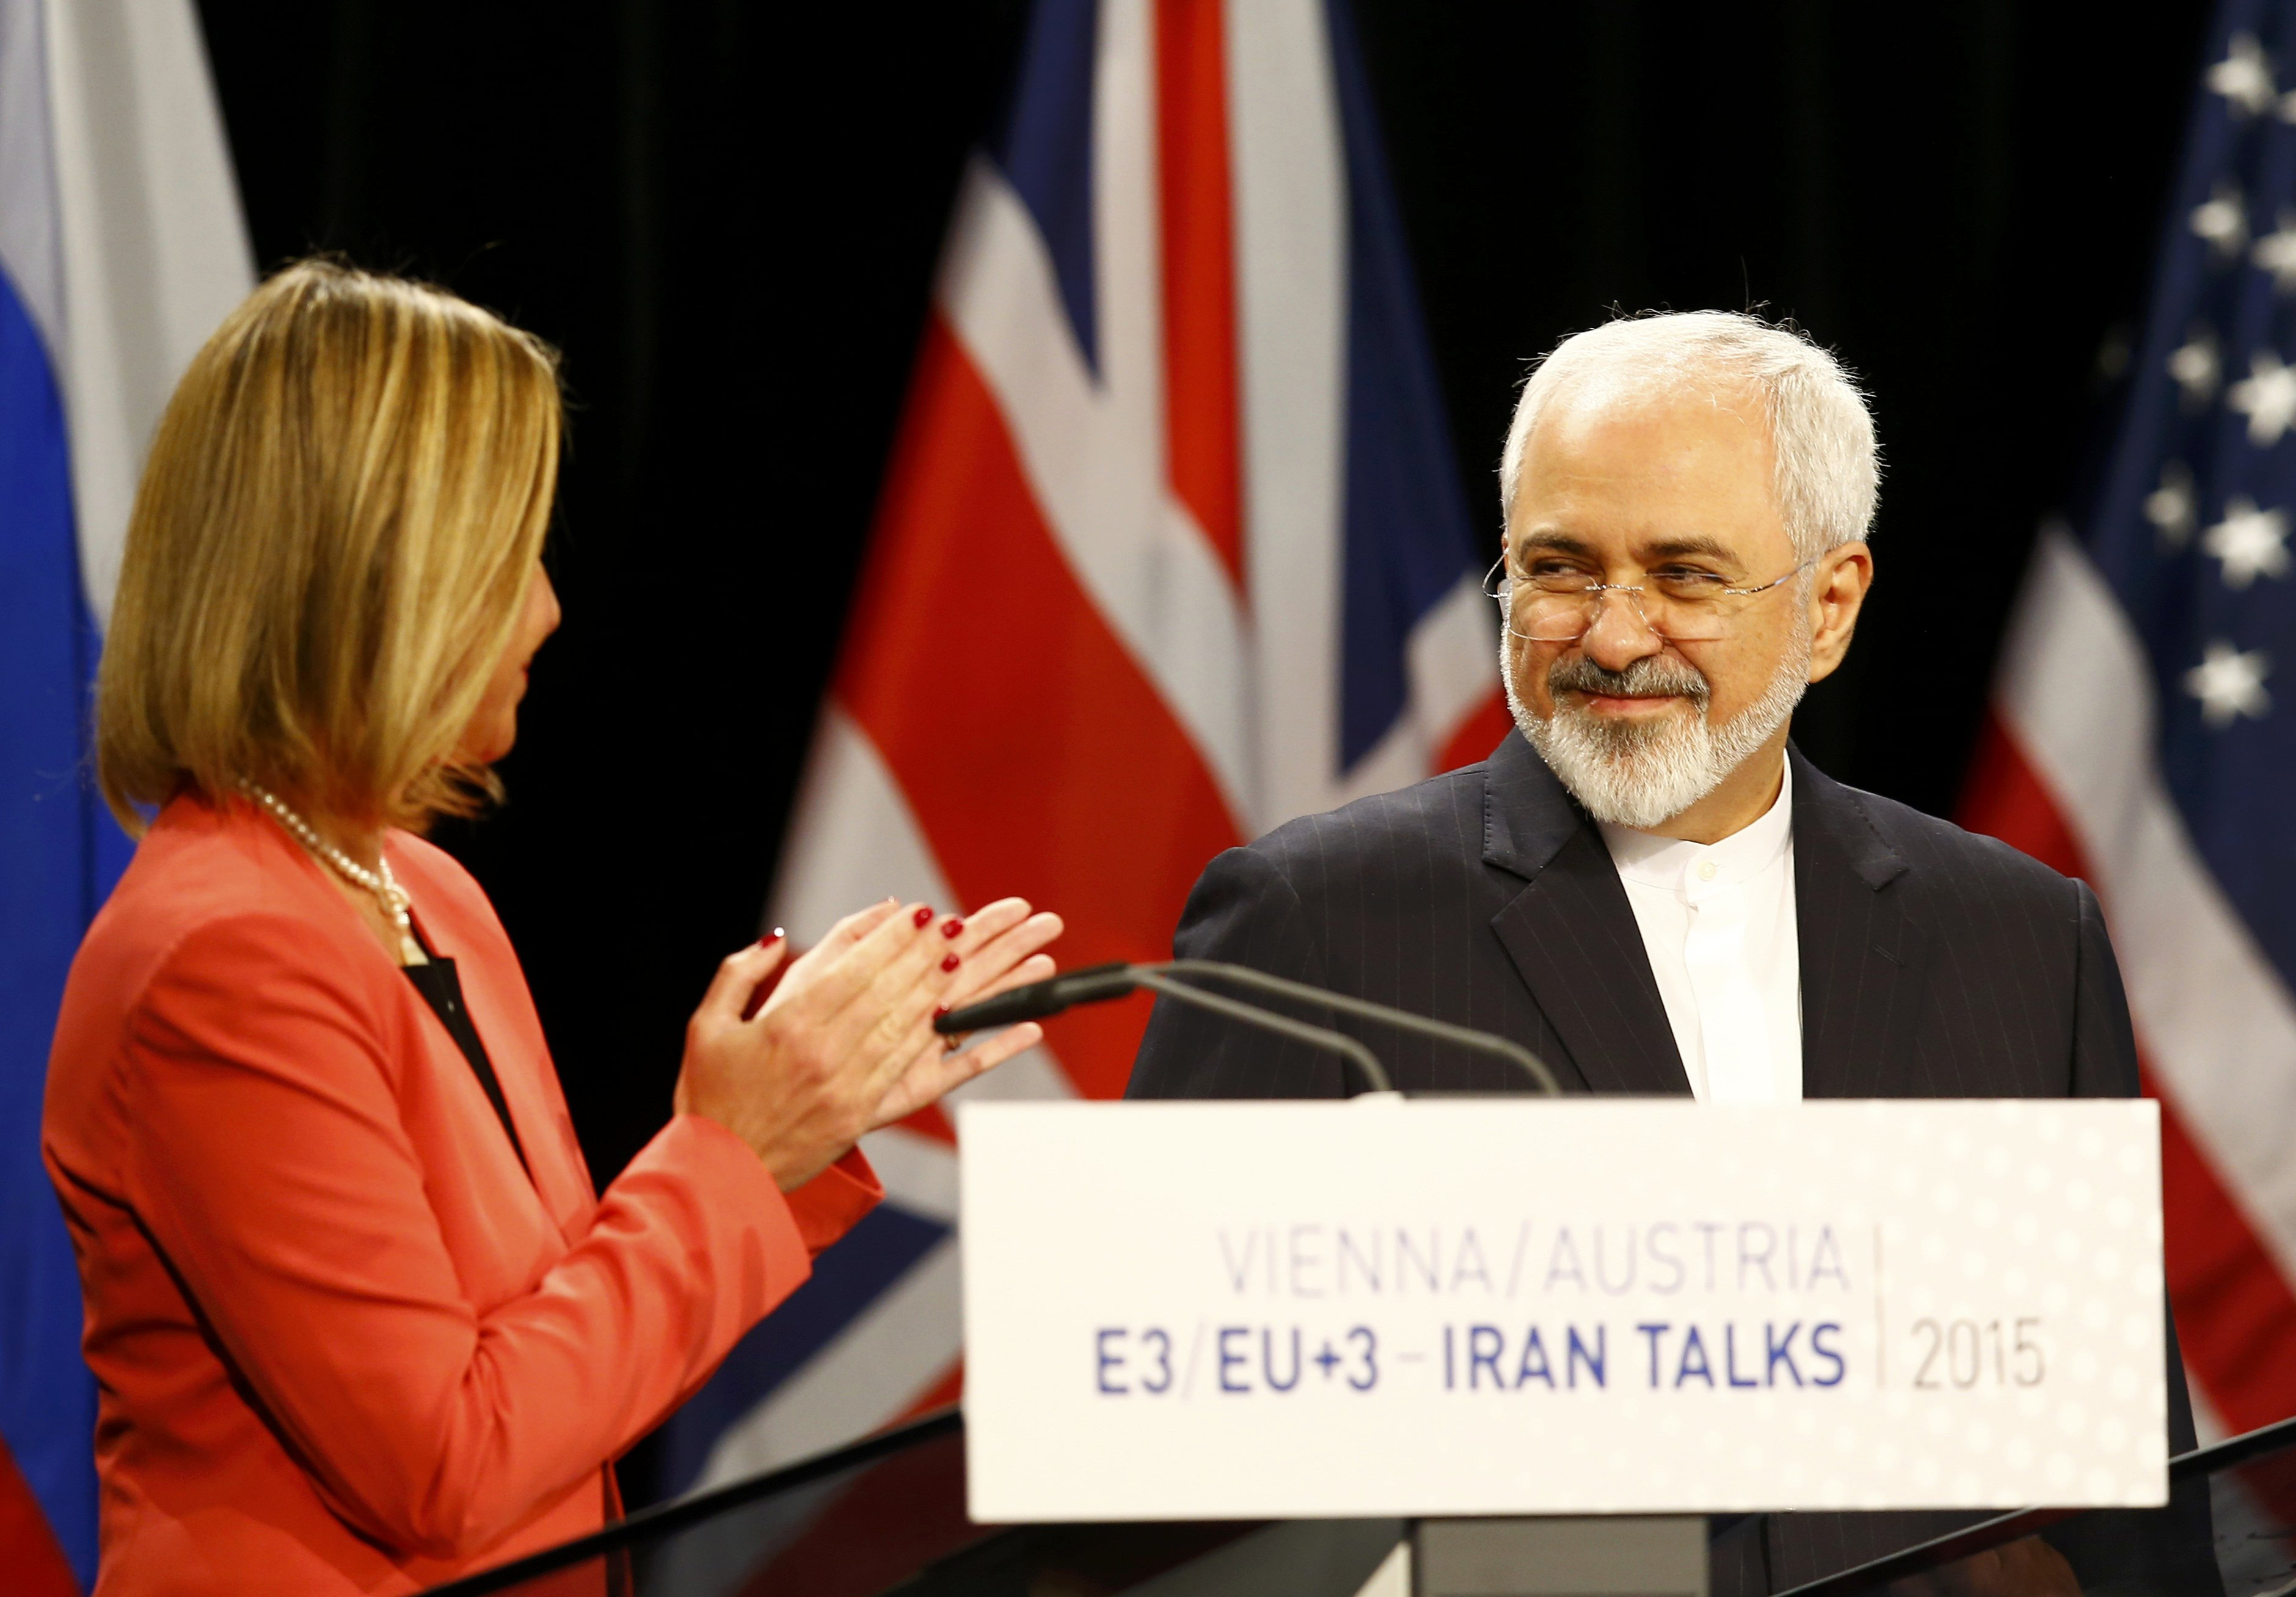 High Representative of the European Union for Foreign Affairs and Security Policy Mogherini applauds Iranian FM Zarif during a joint news conference after a plenary session at the United Nations building in Vienna